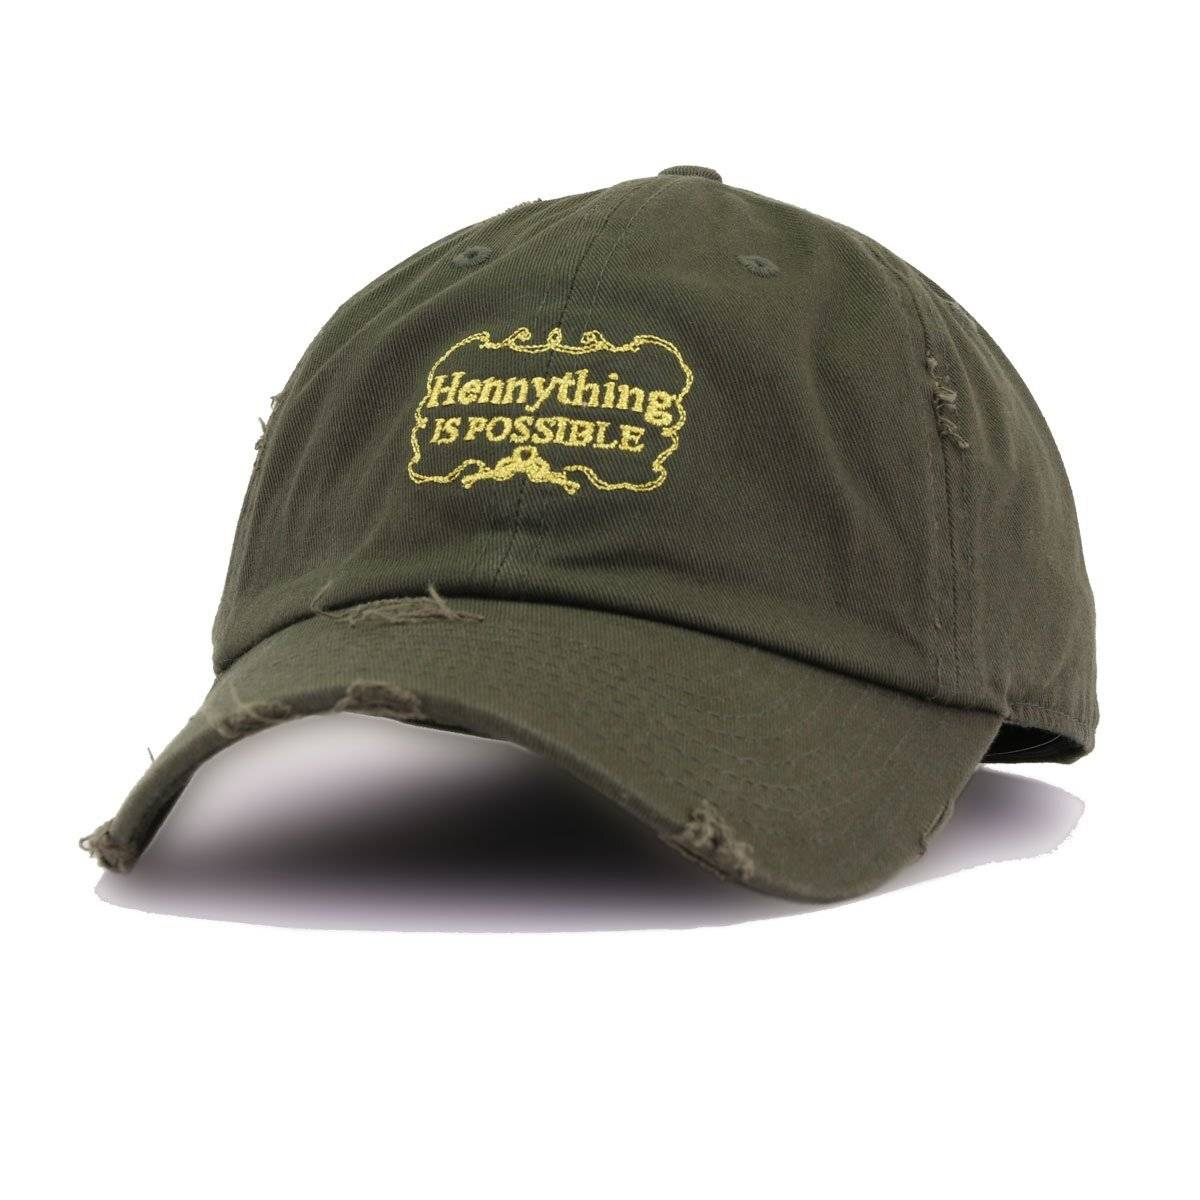 Distressed Hennything is Possible Olive KBEthos Vintage Dad Hat